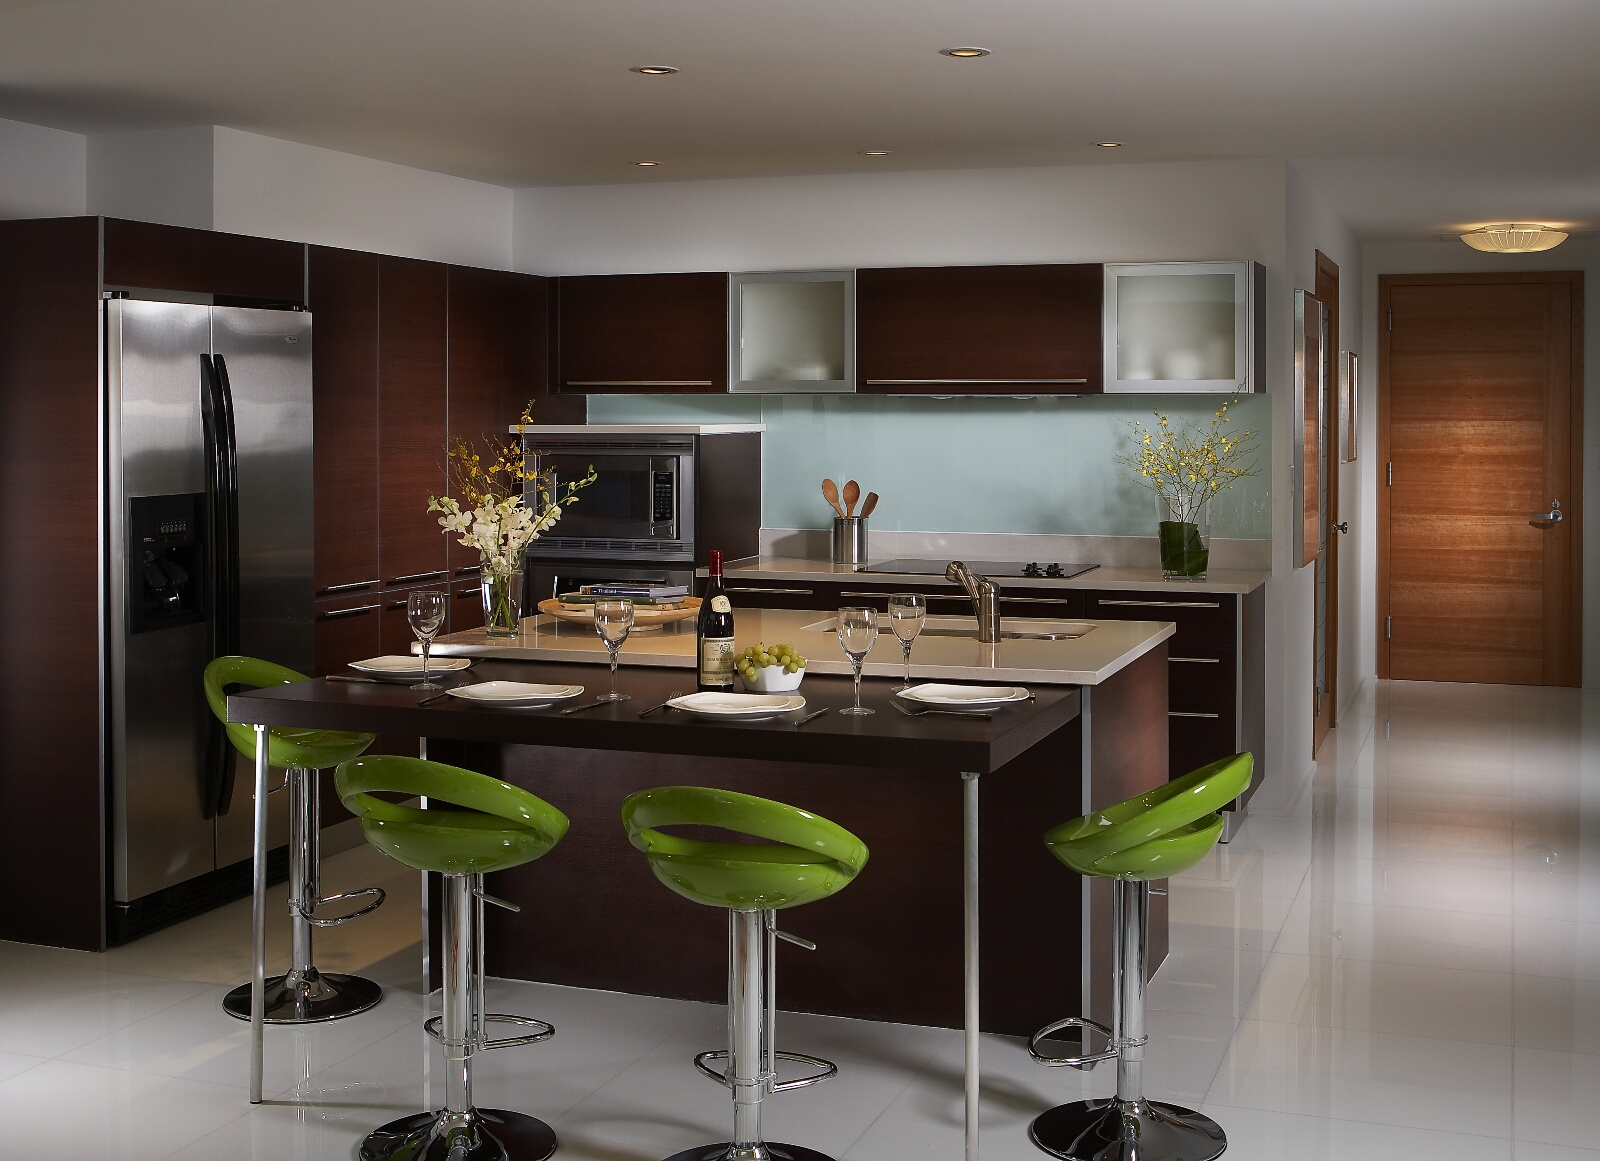 Uncategorized Miami Kitchen Design 100 kitchen designers small l shaped design interior services miami florida